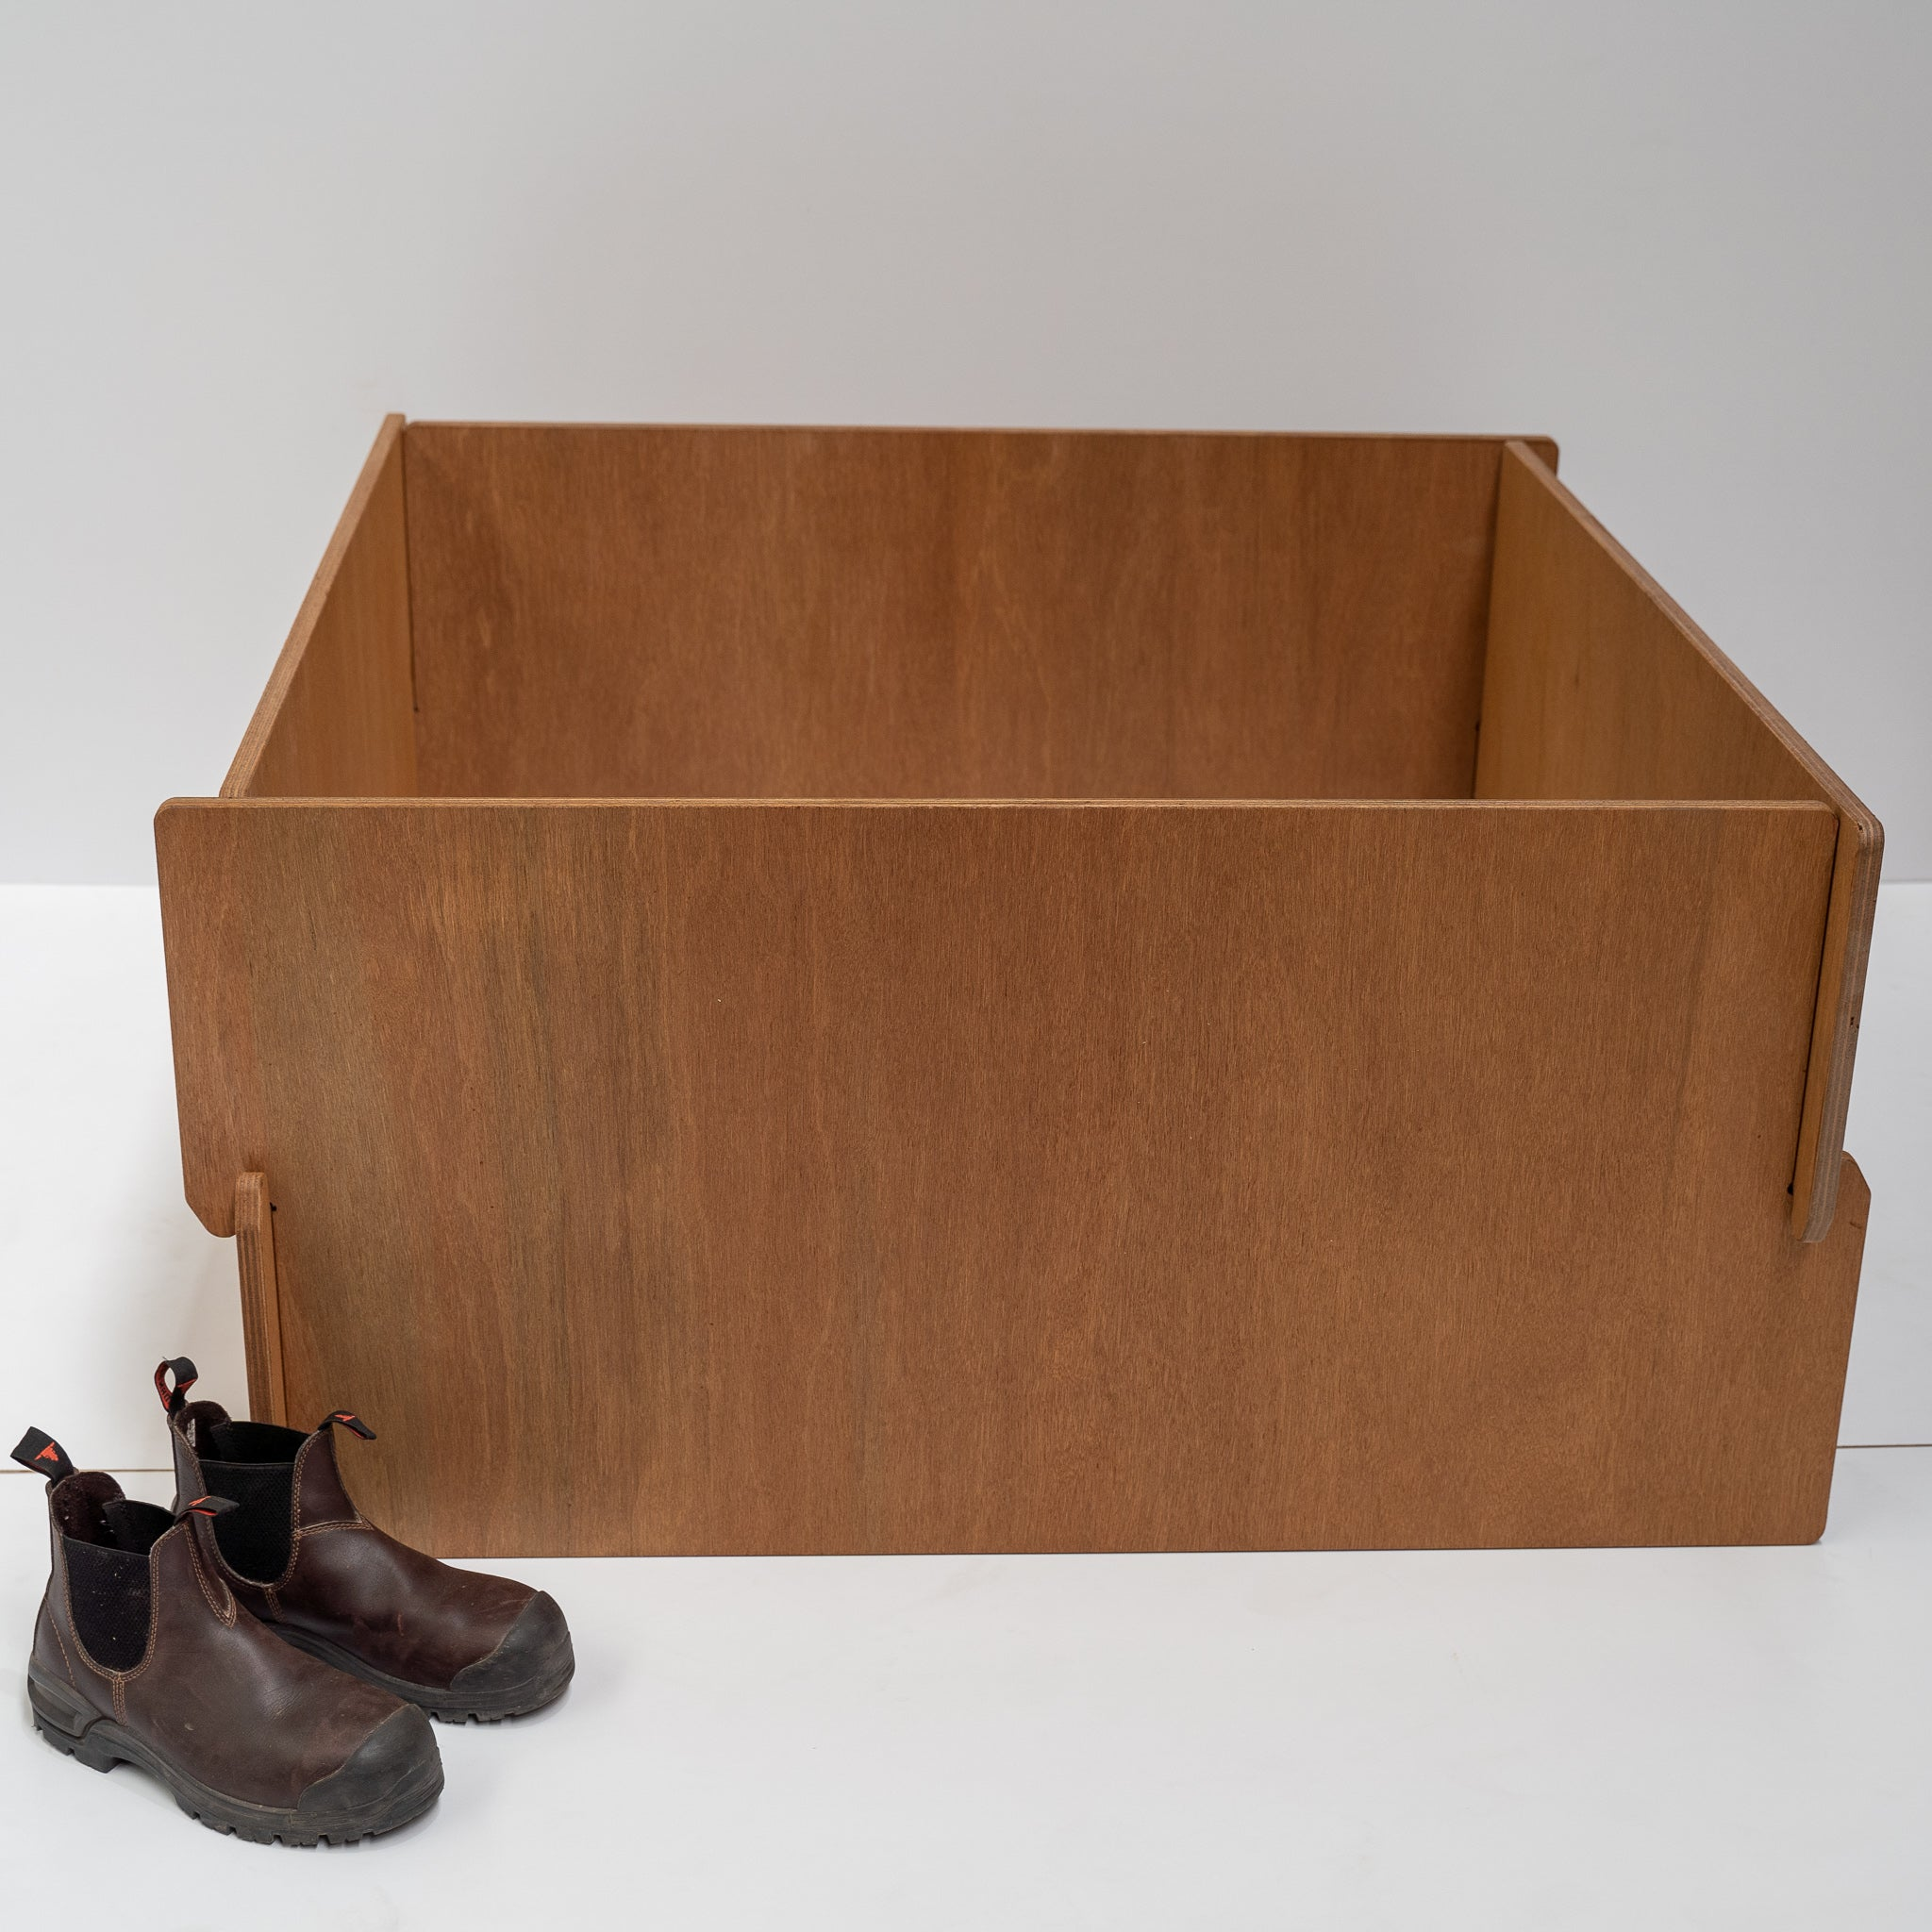 Kitset Planter Box - 280mm